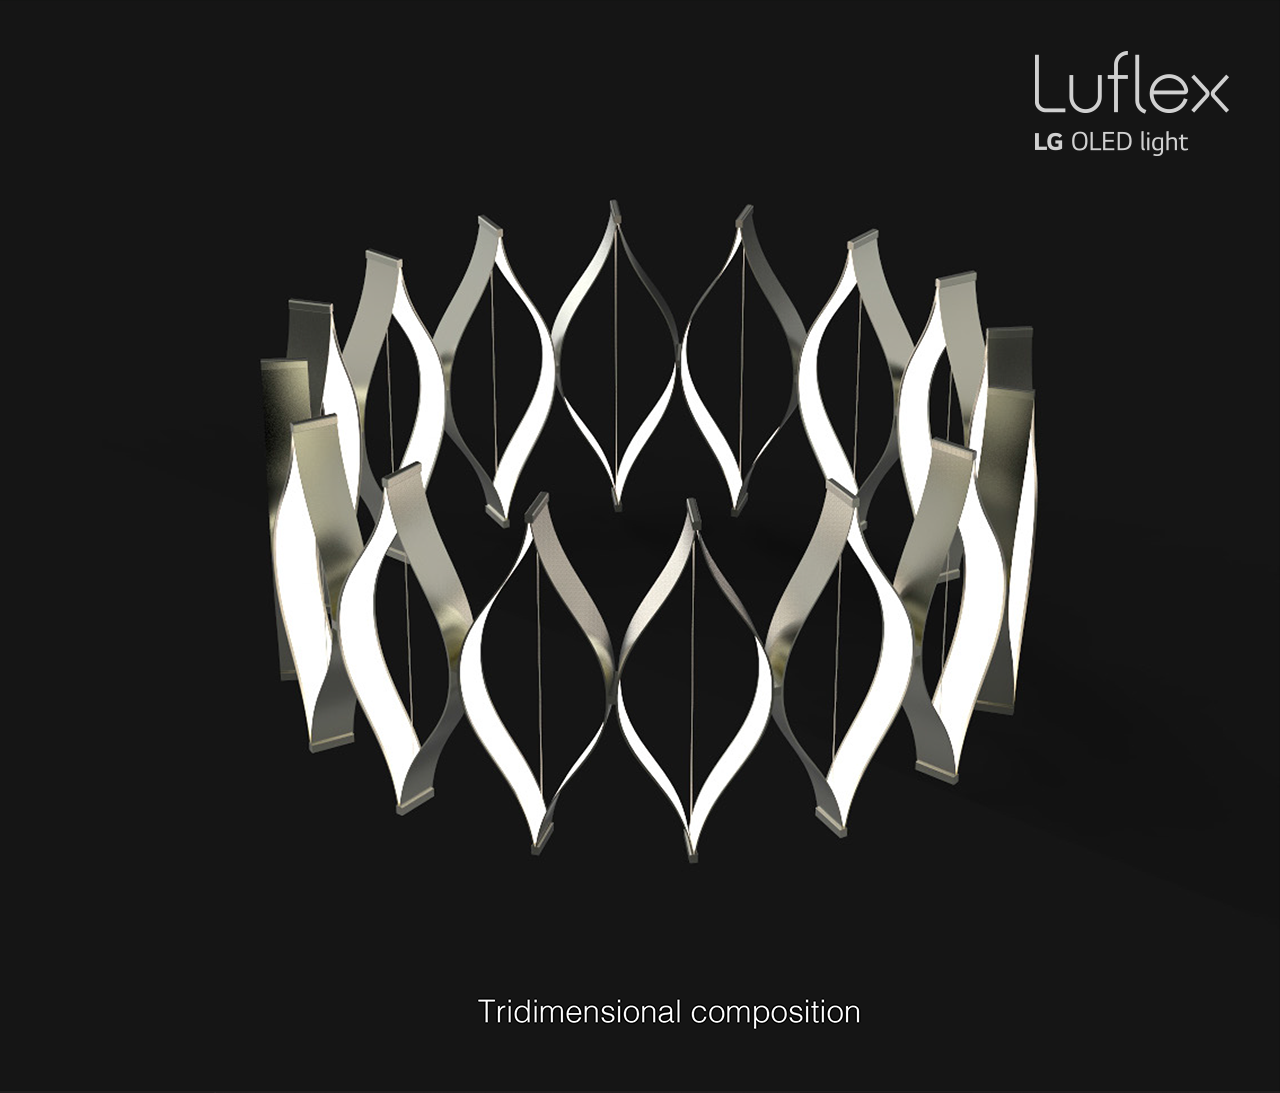 Luflex #LG #OLED #display #lighting #light #Eye_comfort